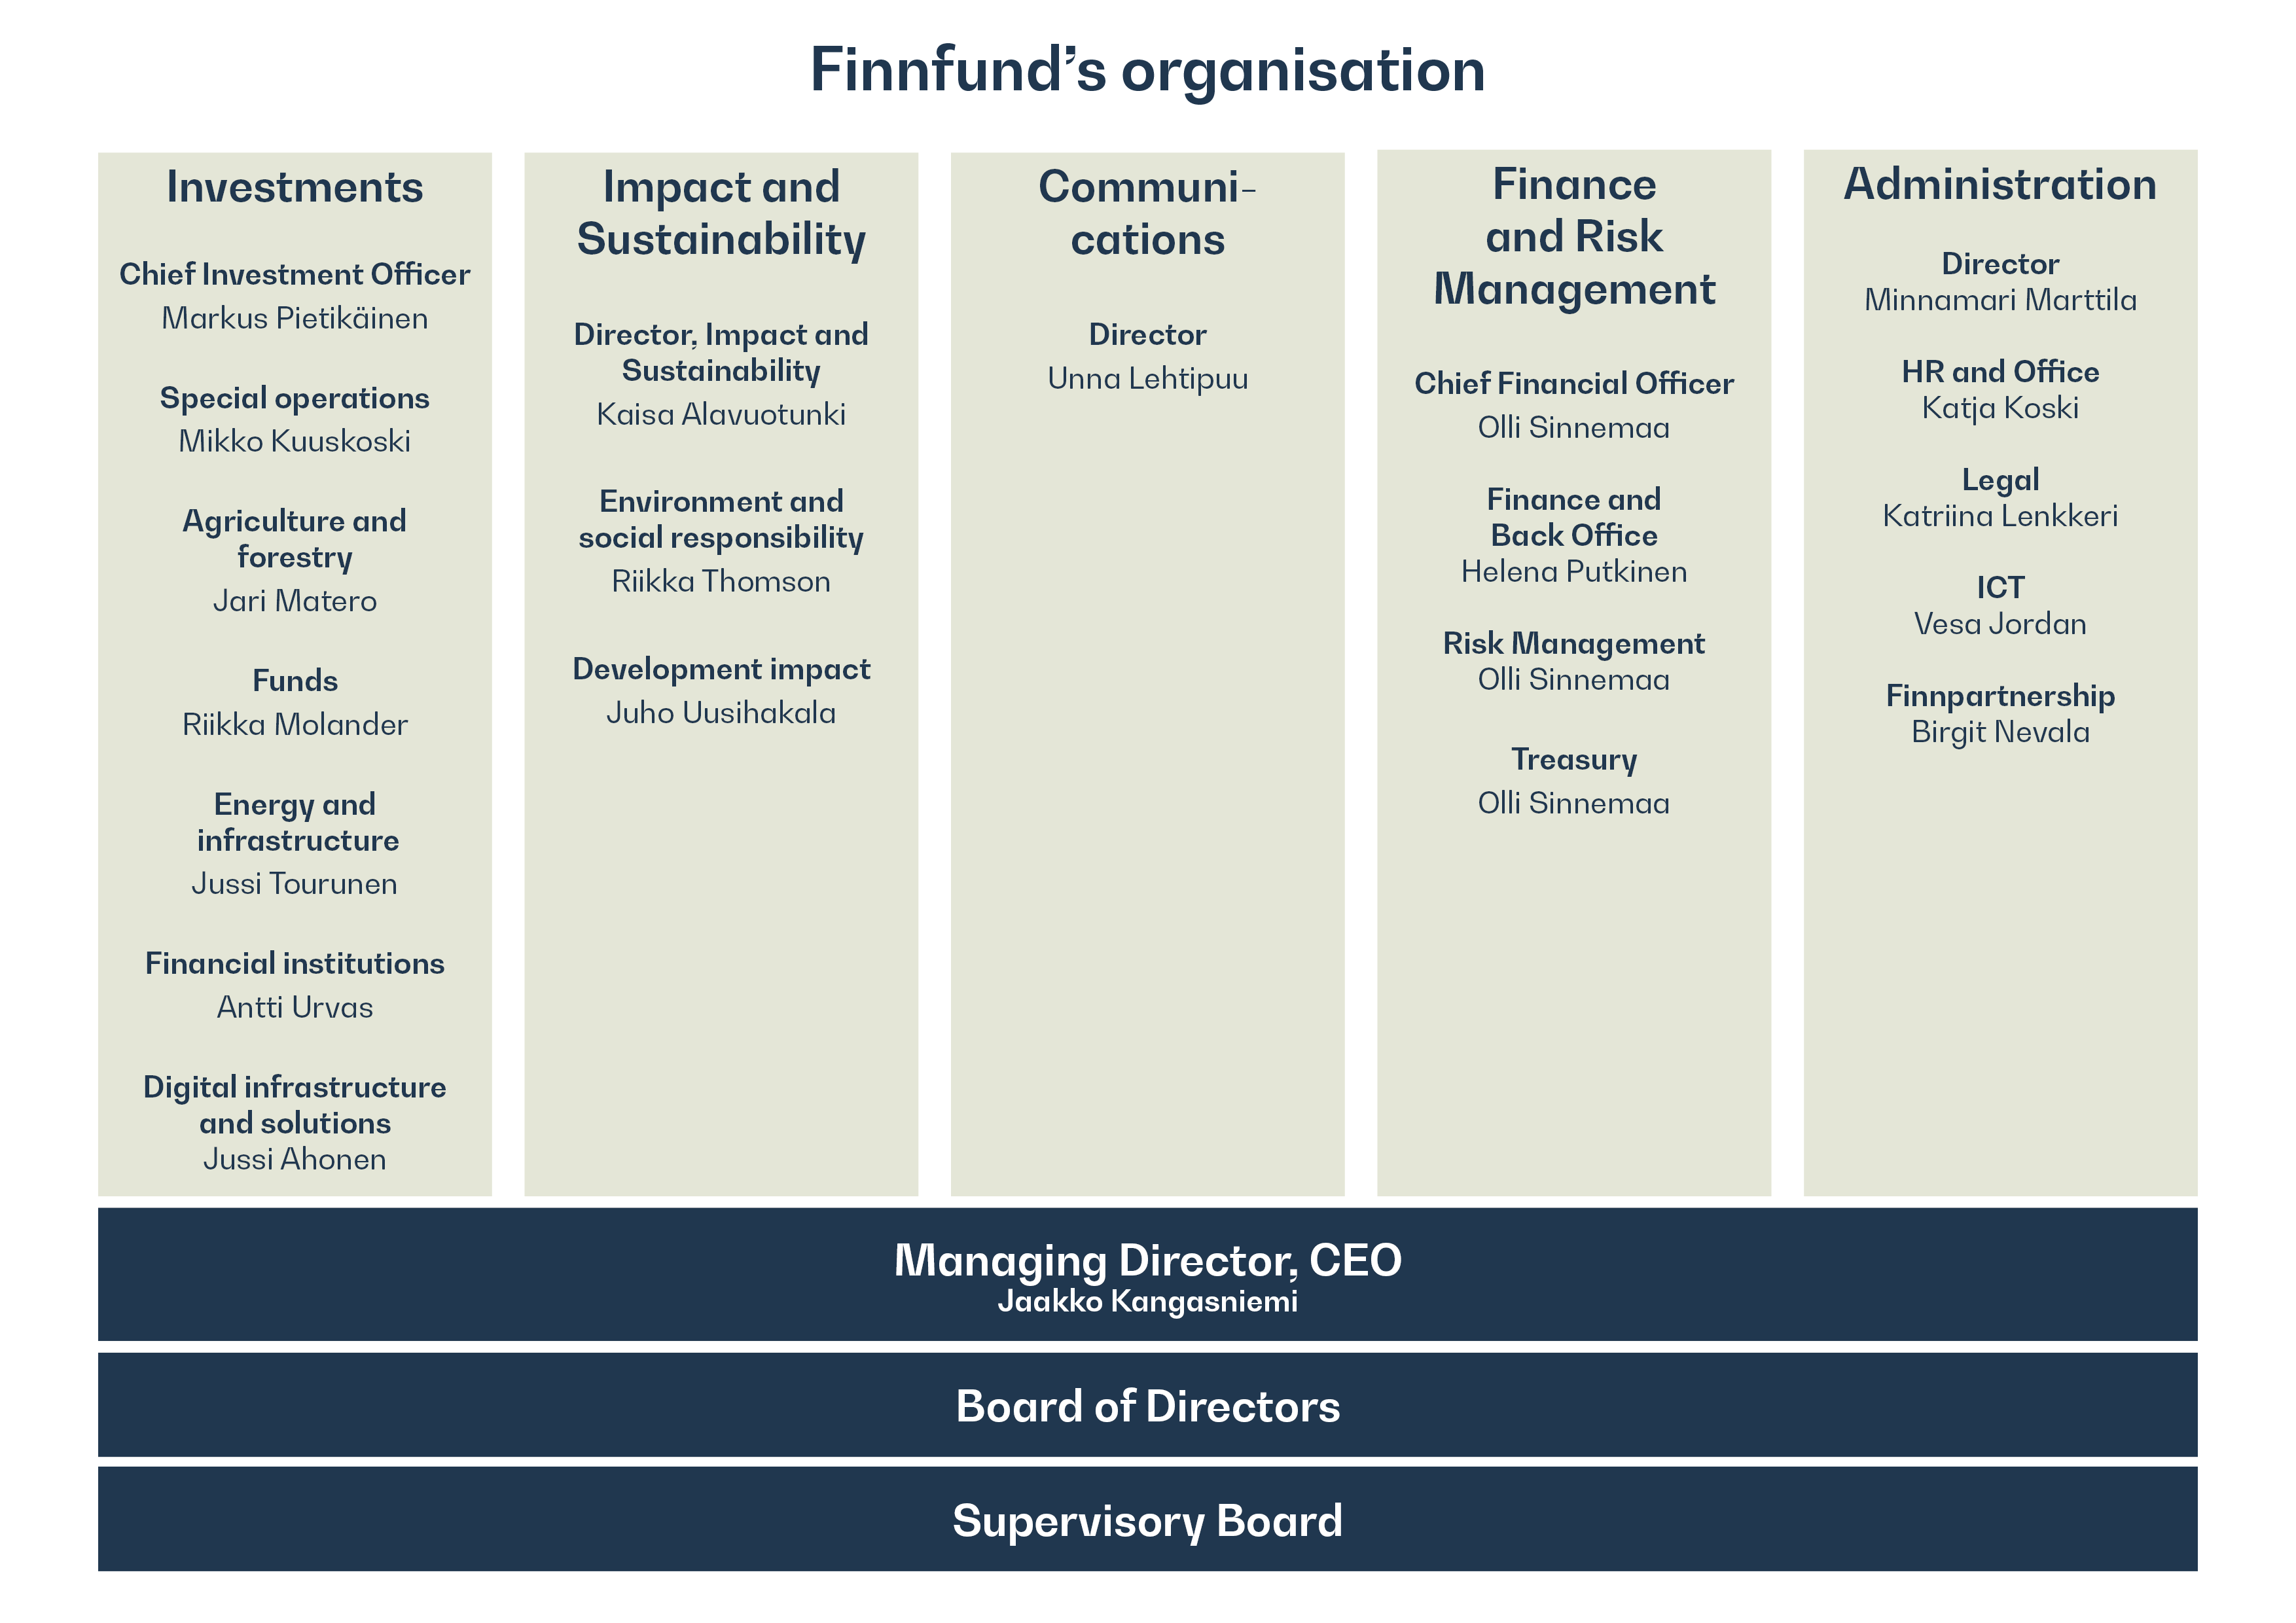 organisation chart stating names of departments and their directors